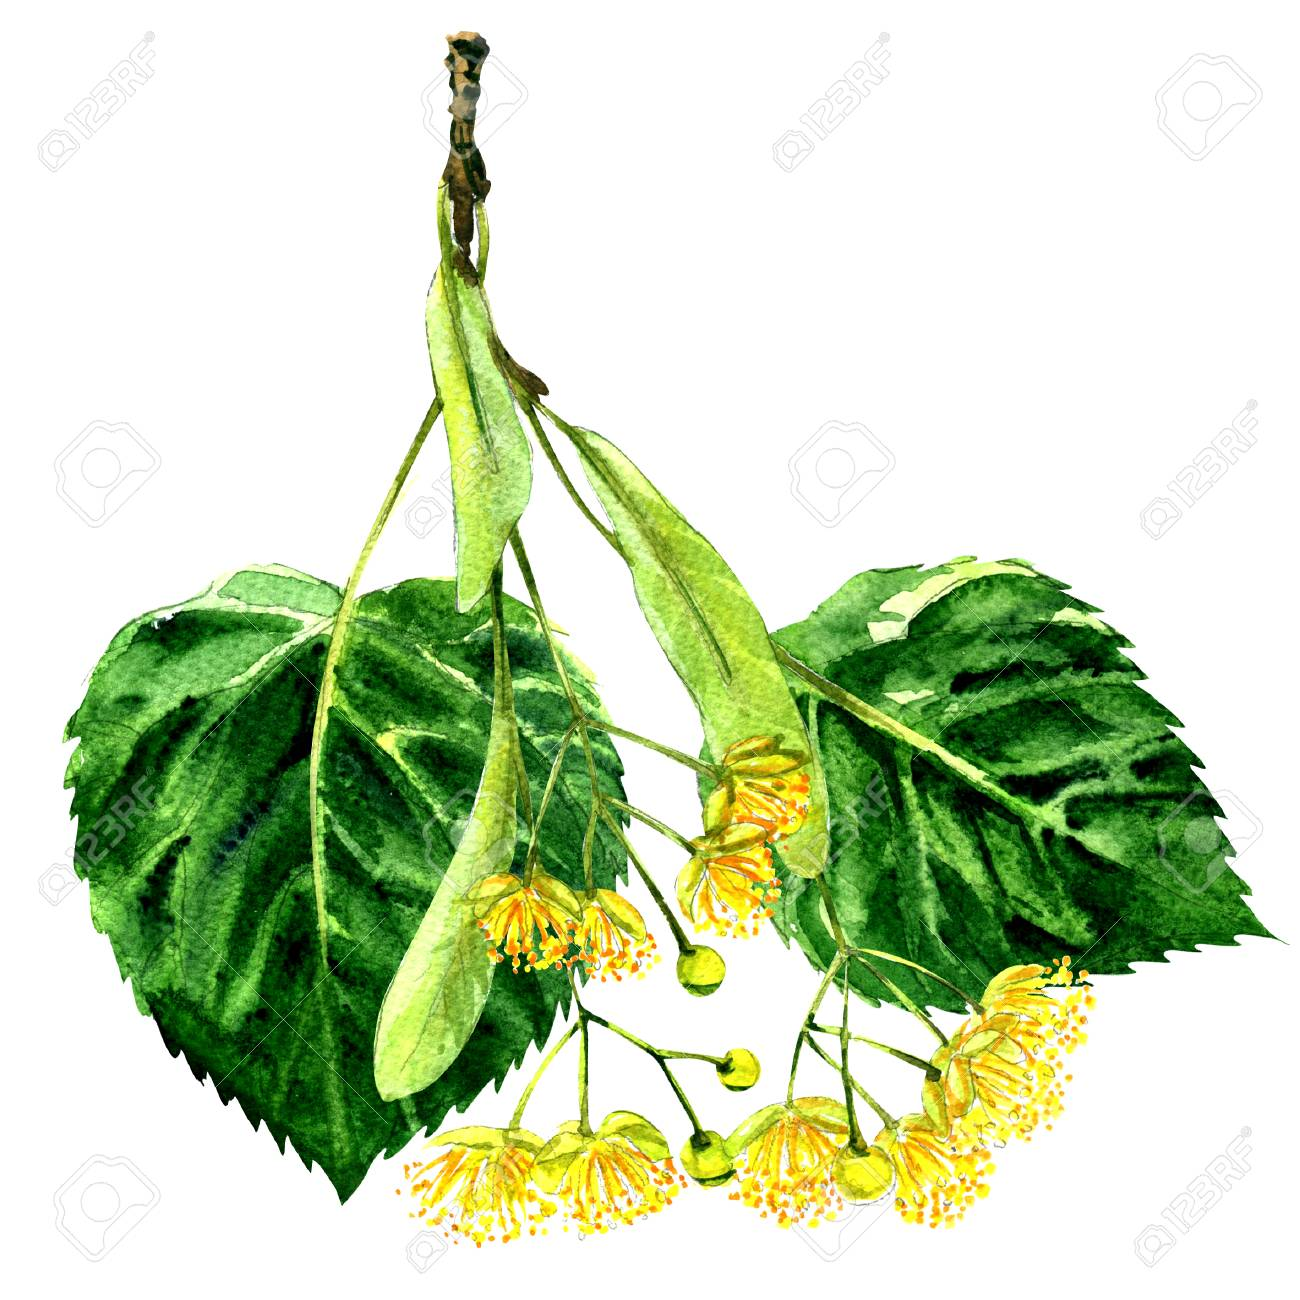 Fresh flower and leaf of linden branch isolated, watercolor illustration on white background - 69660823